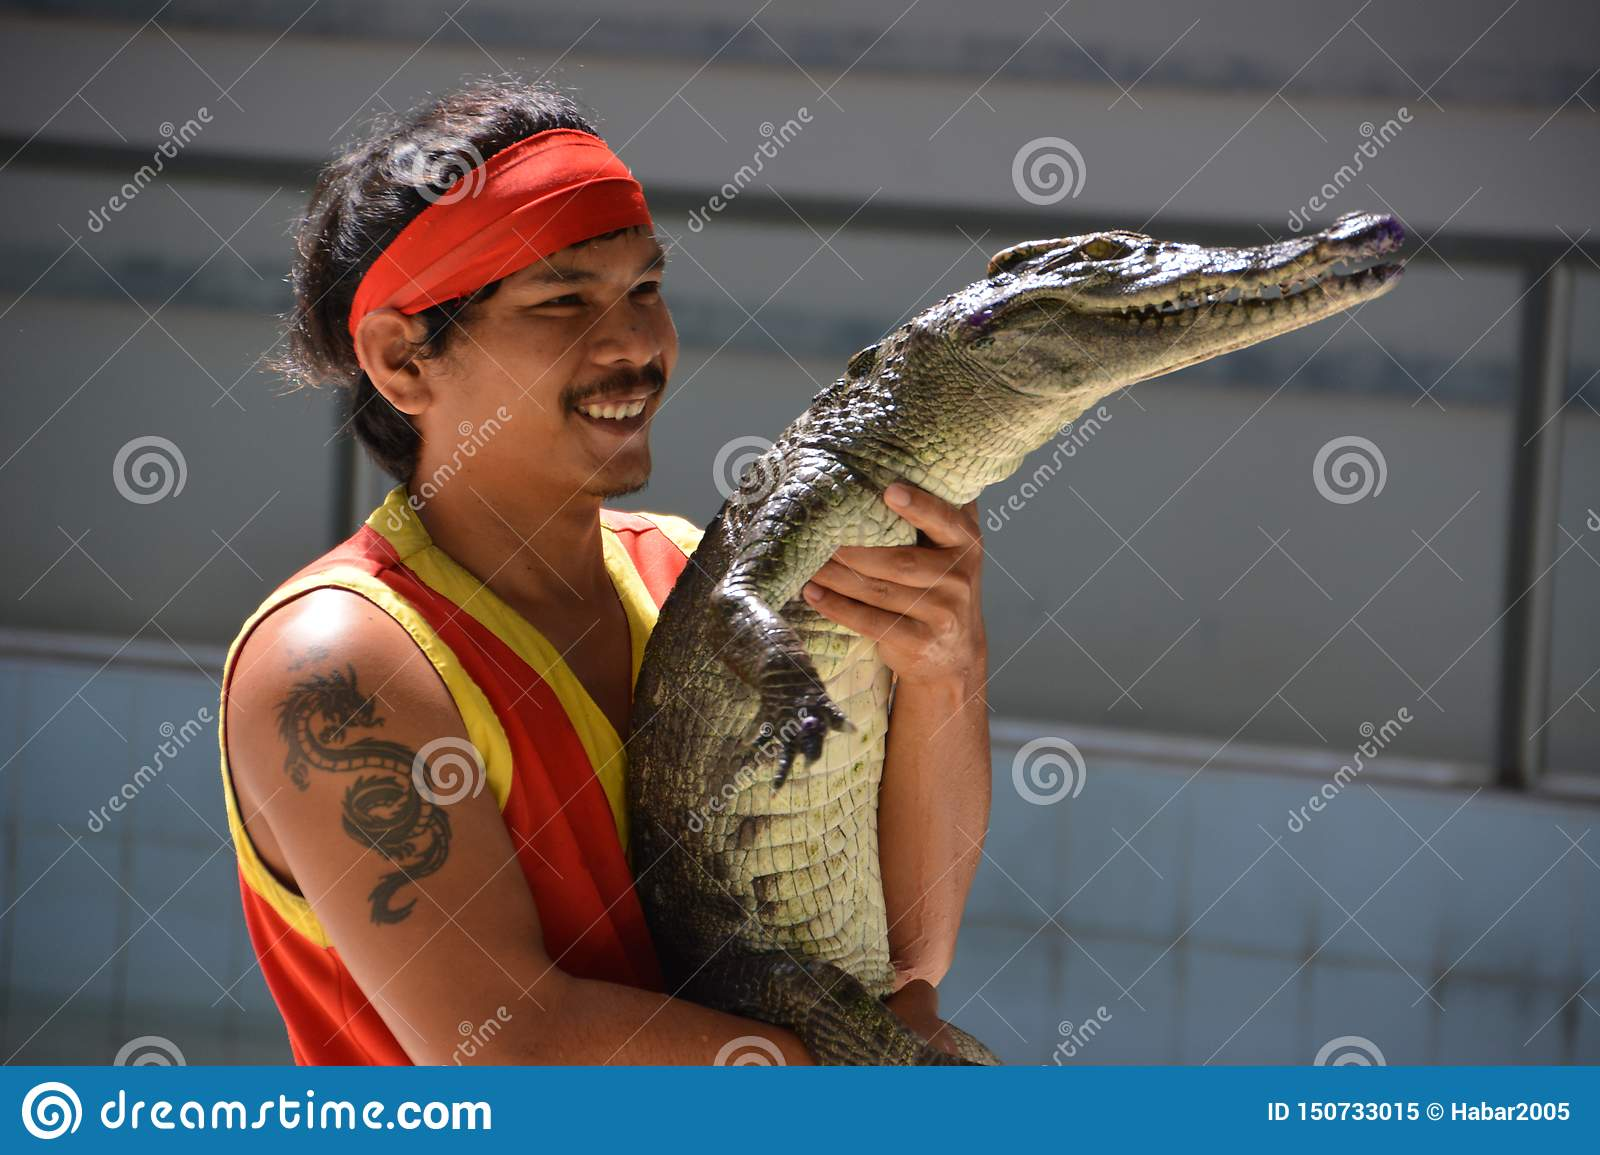 A man is holding a crocodile in his hands. Crocodile show at Phuket zoo, Thailand - December 2015: crocodile show.